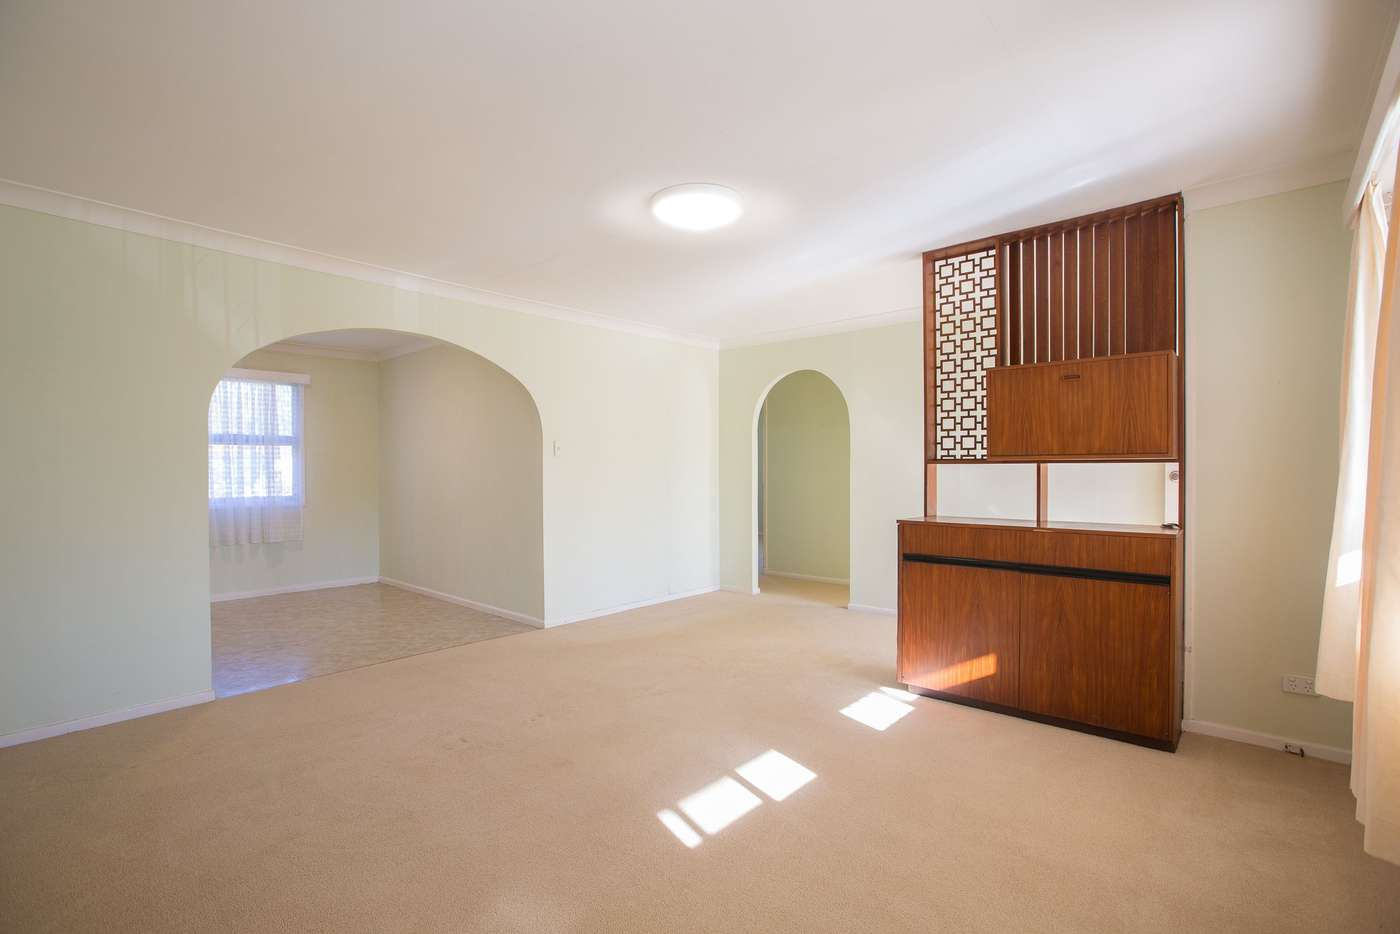 Sixth view of Homely house listing, 14 Shirley Street, Southport QLD 4215